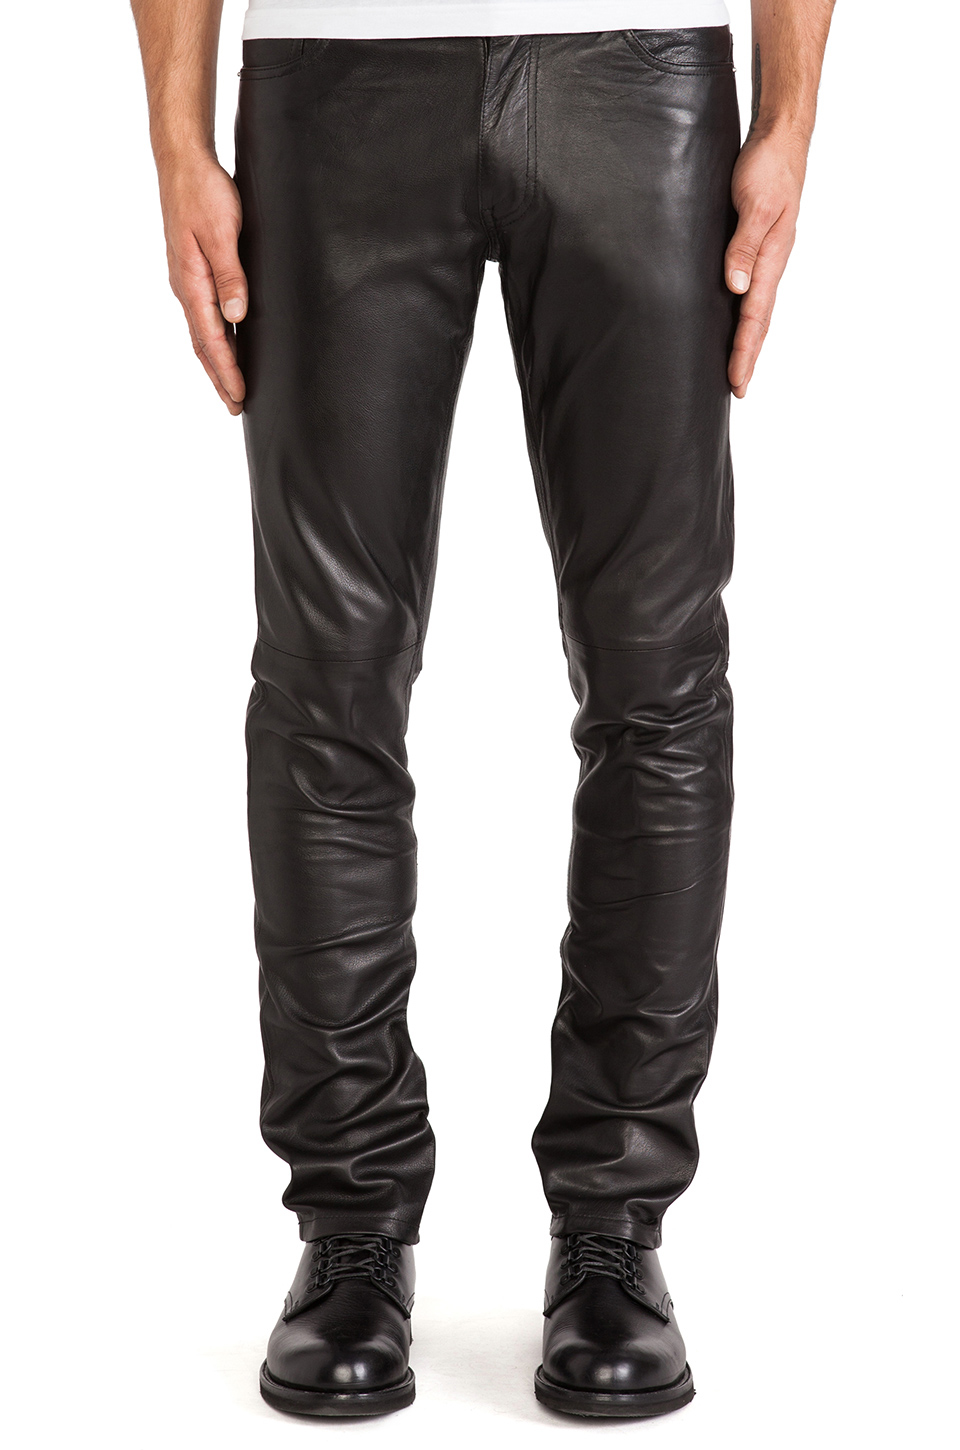 Typically, leather motorcycle pants for everyday riding or touring will be a looser fit with reinforcement panels in impact areas. As a corollary, sport riding and track pants will have more aggressive fit and pre-shaping (sewn riding position) as well as articulated stretch panels, areas for .